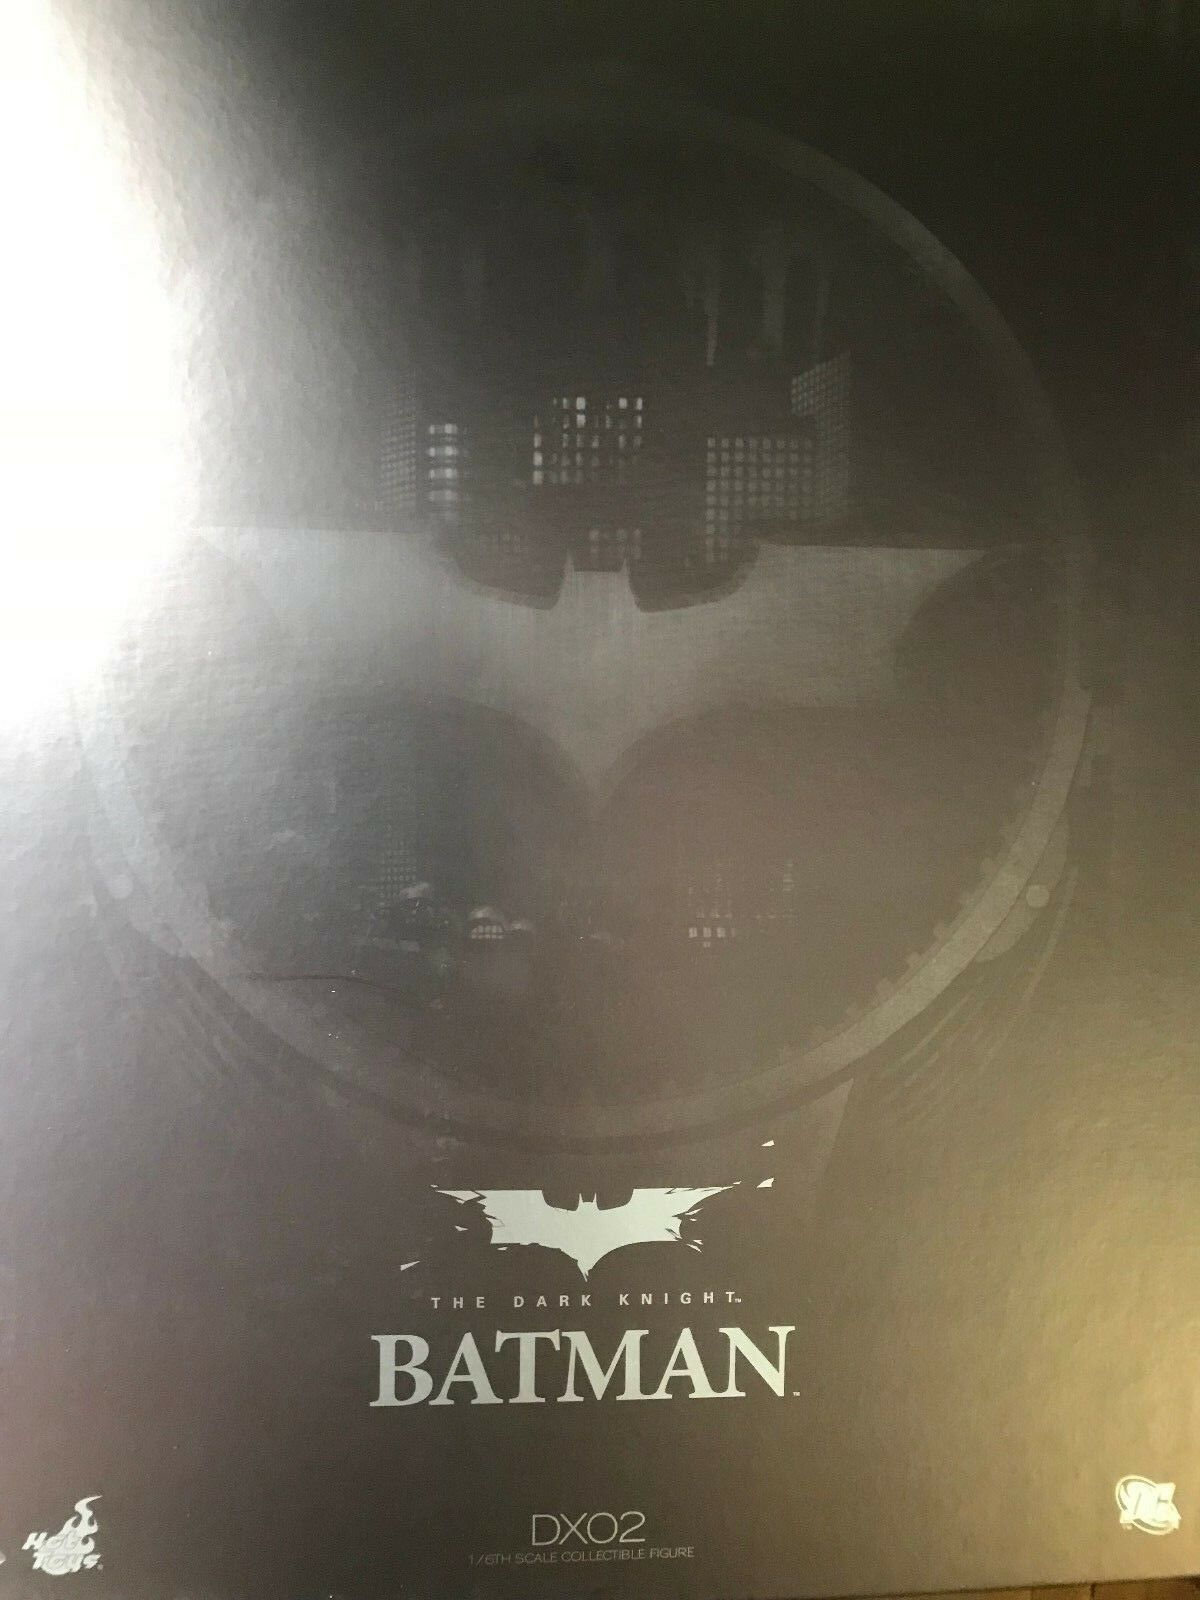 Hot toys Batman DX-02 1:6 Collectible Figure BNIB MINT USA Awesome Collectible